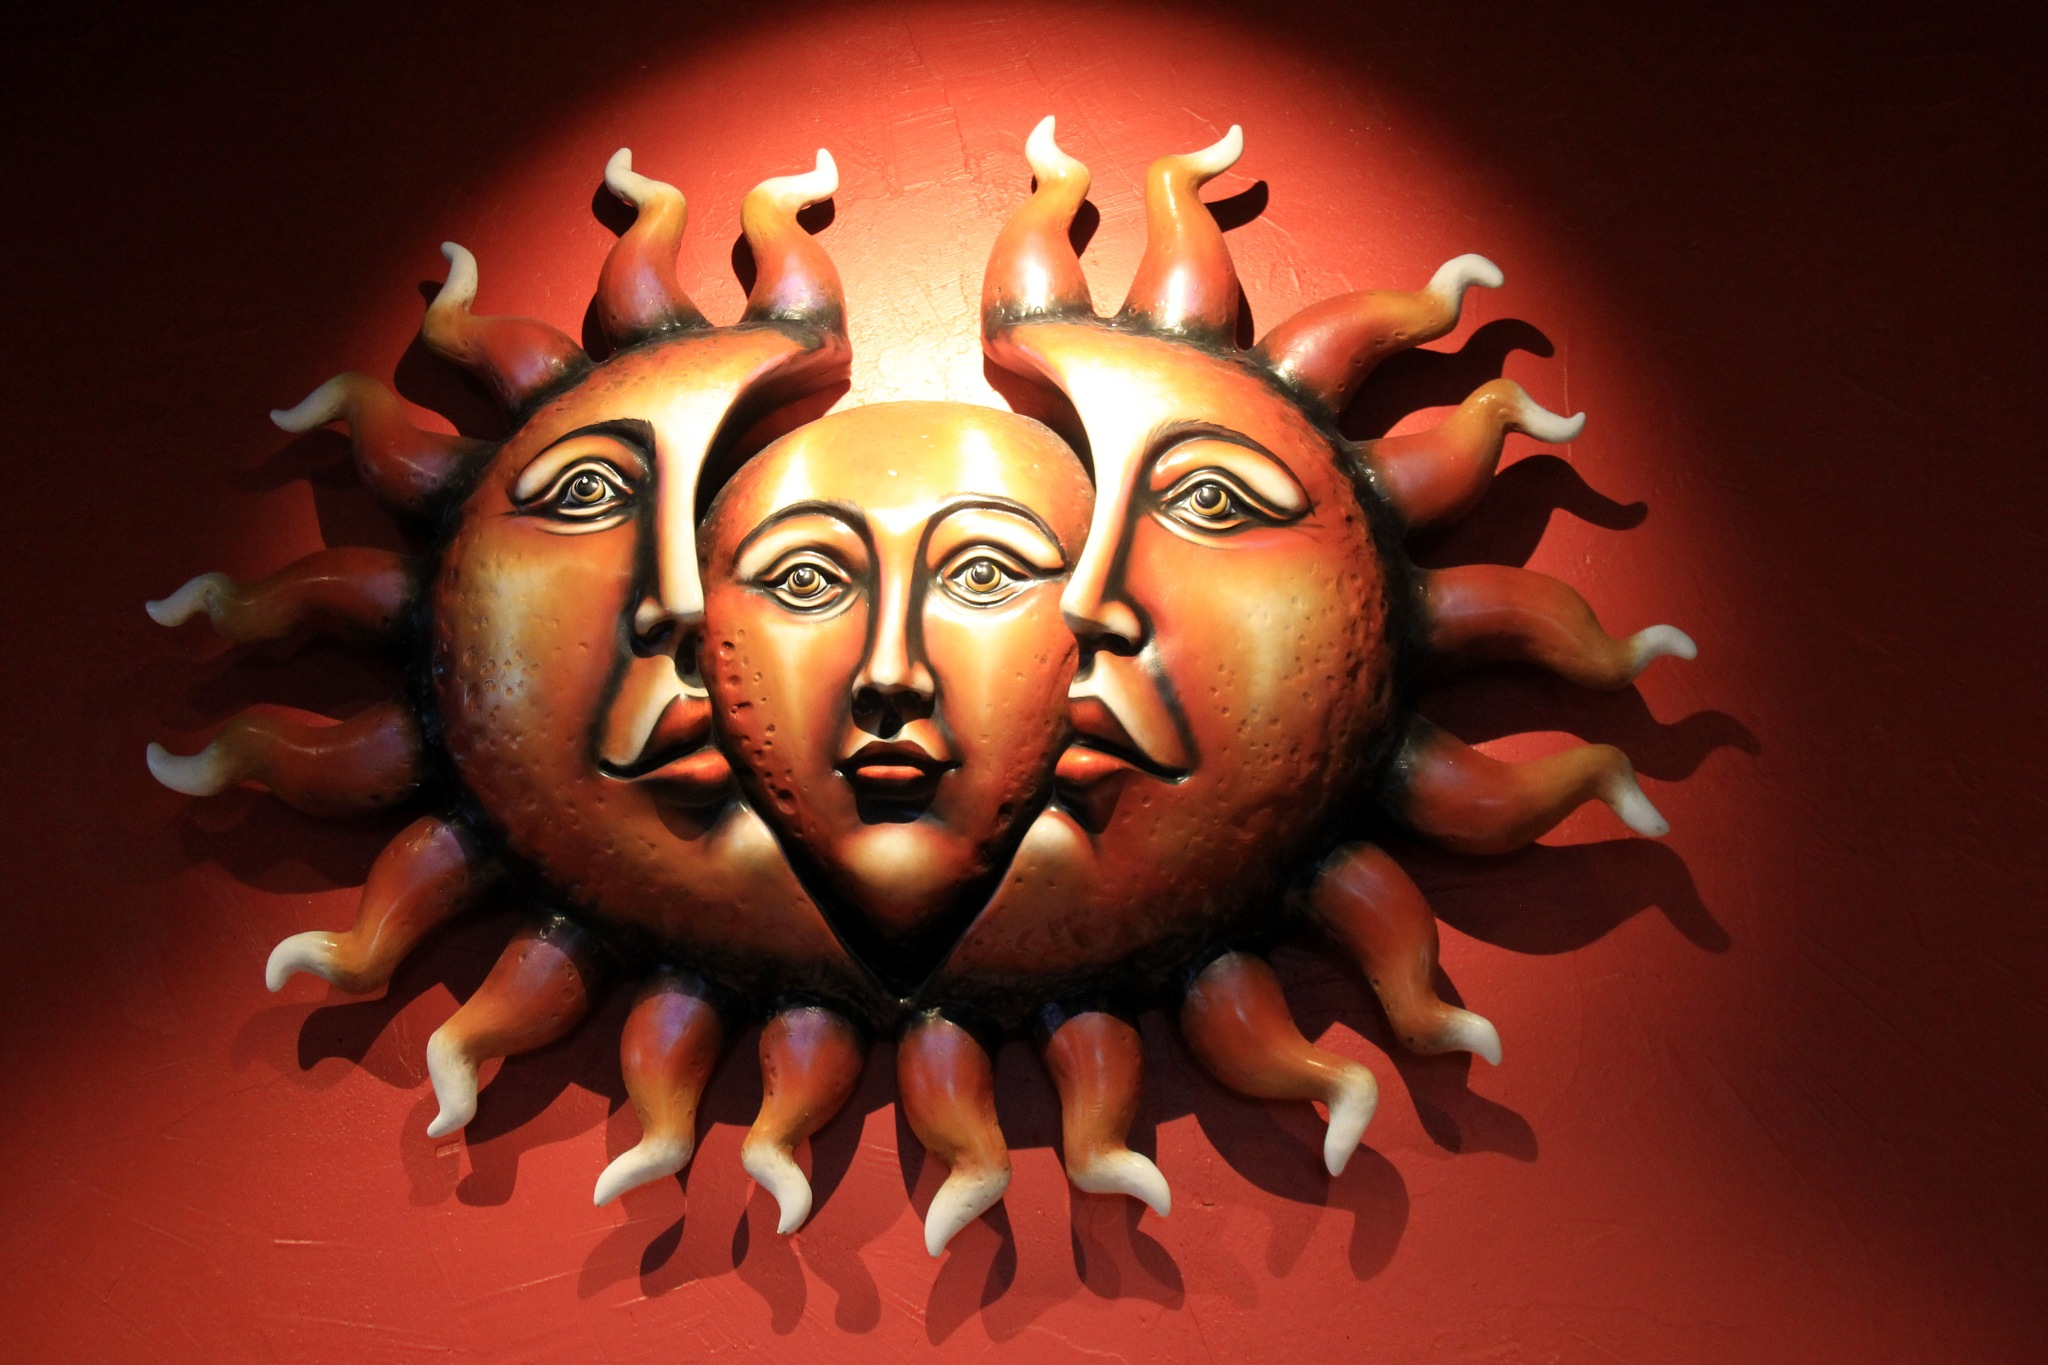 moods of the sun by theresaSt.john